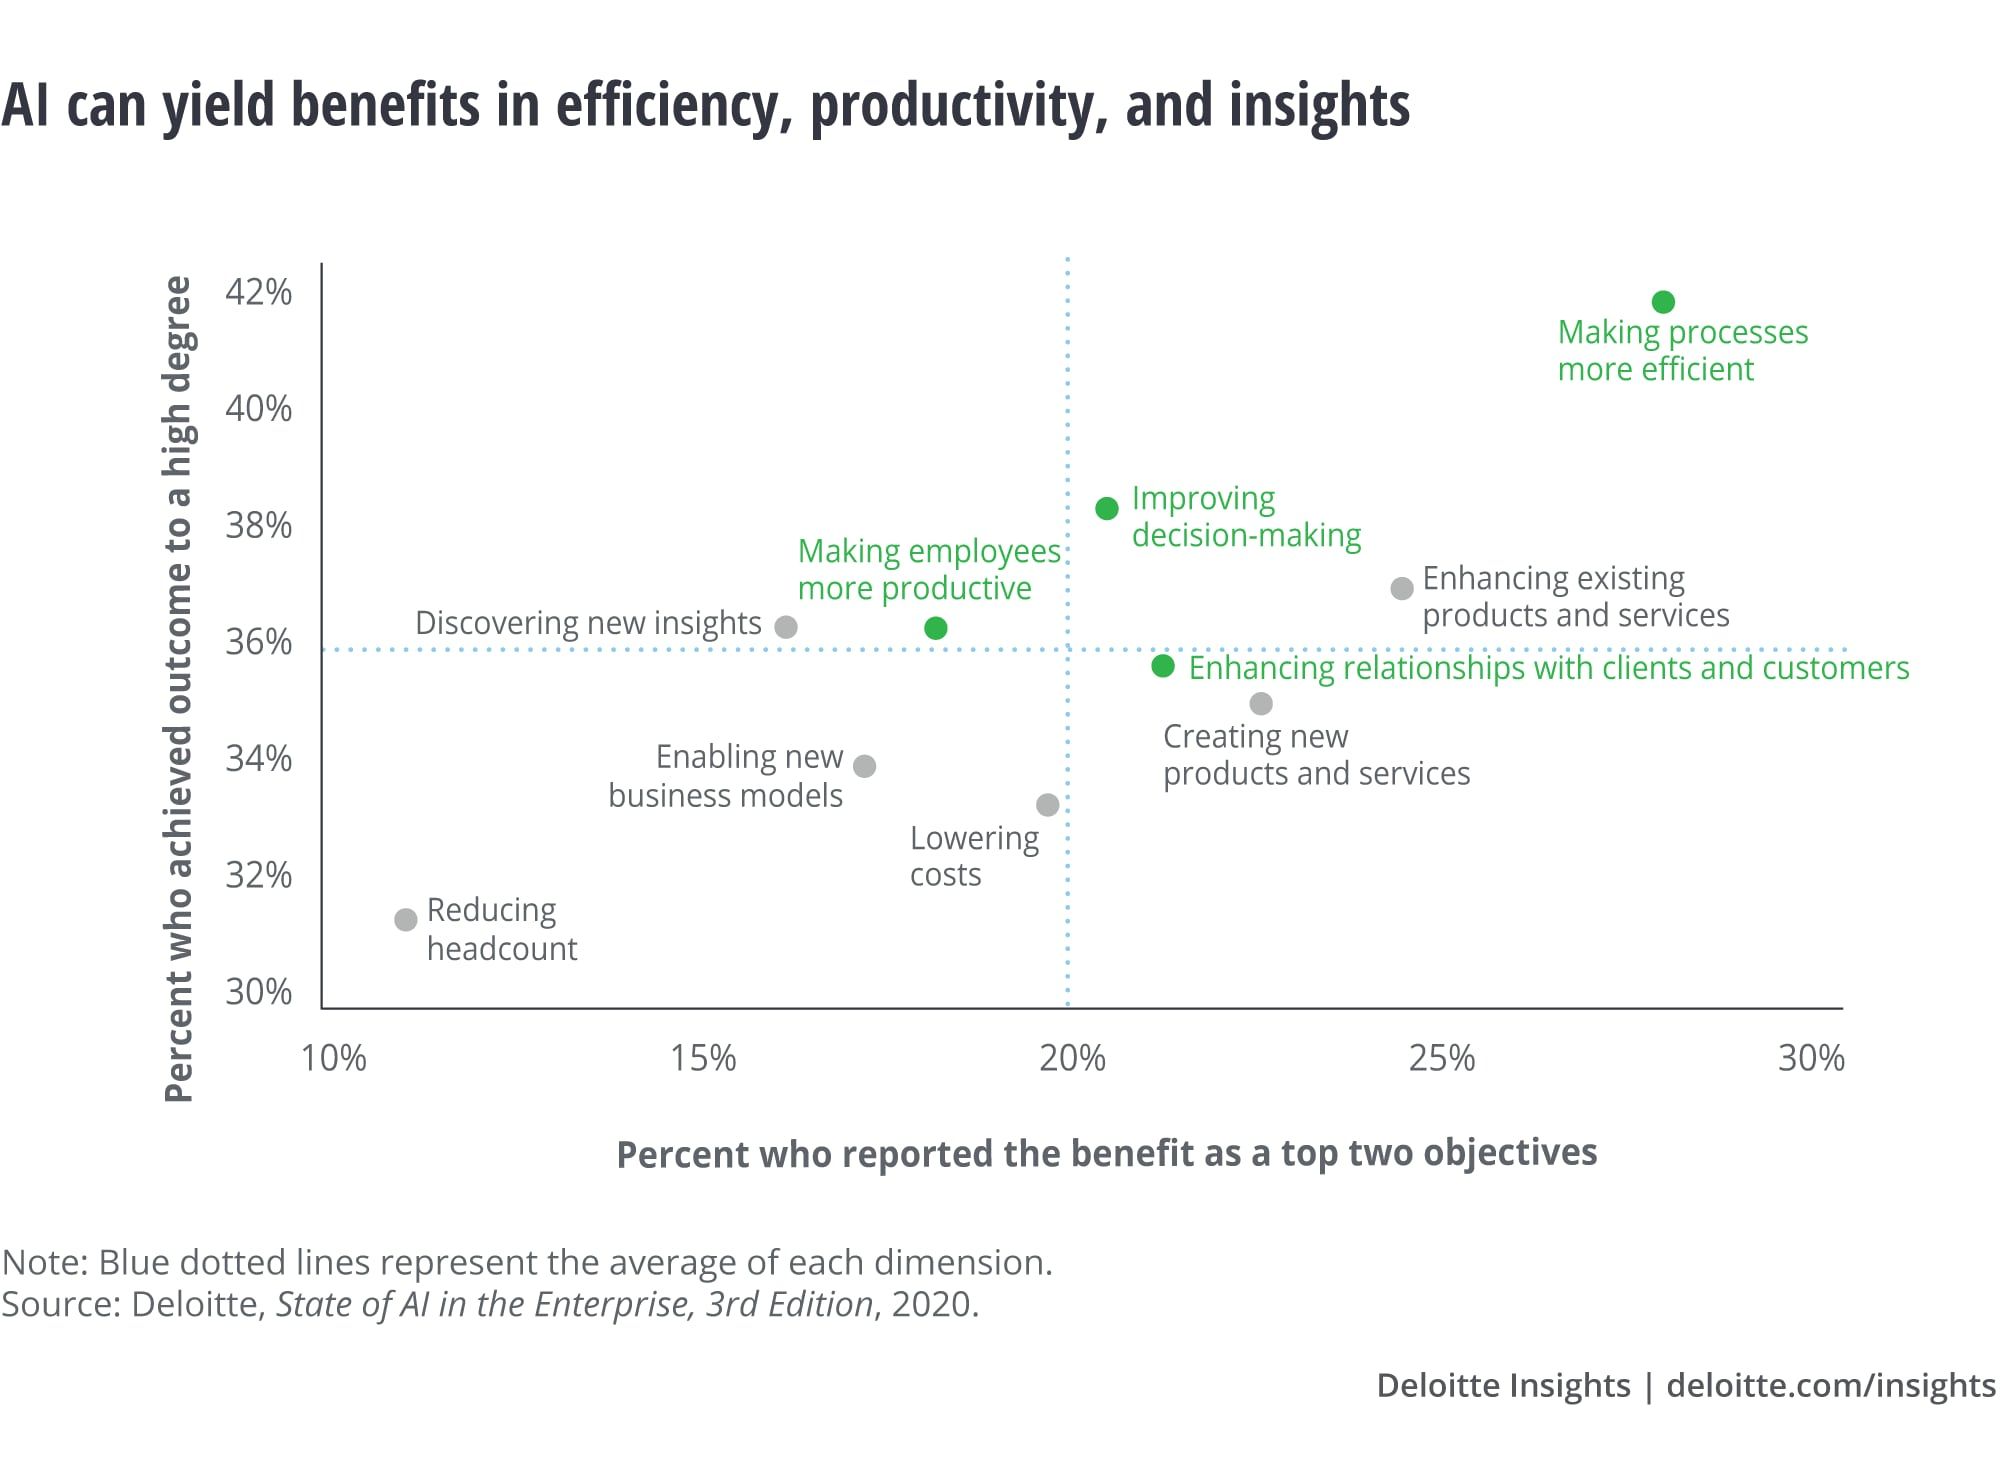 Process efficiency tops the list of benefits achieved with AI